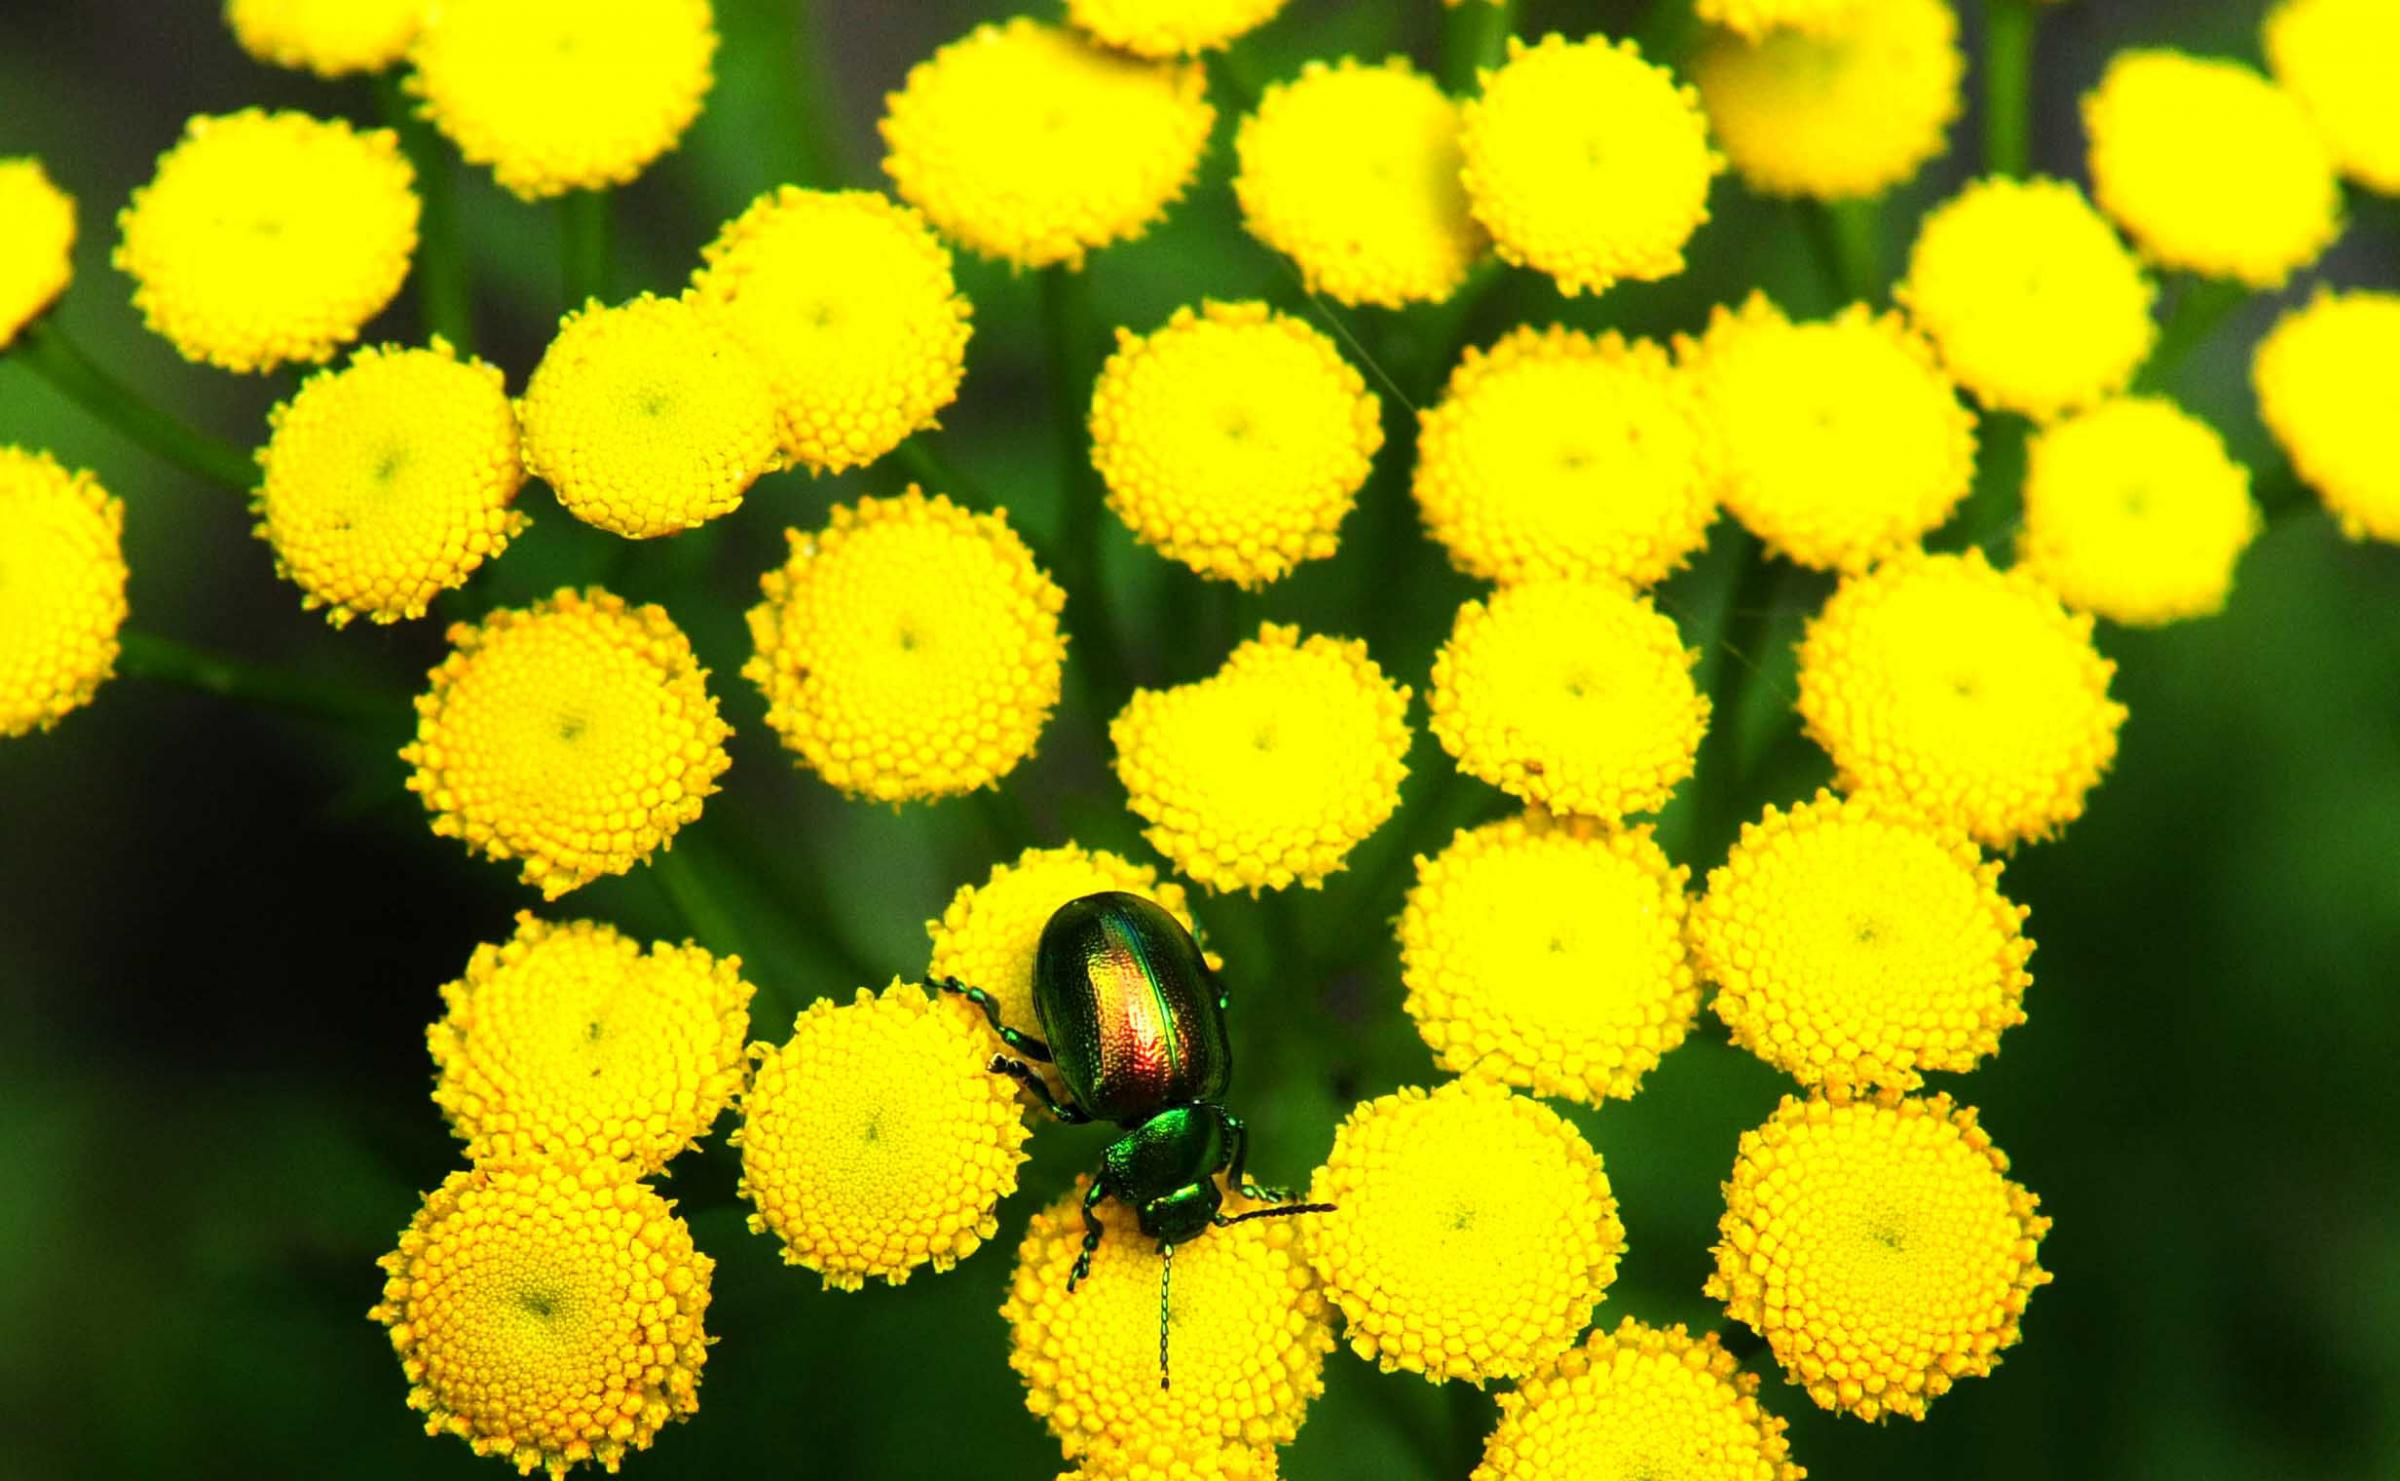 A tansy beetle in York Museum Gardens. The beetle was successfully reintroduced to a 30km stretch of the River Ouse around York, helped by staff at the gardens